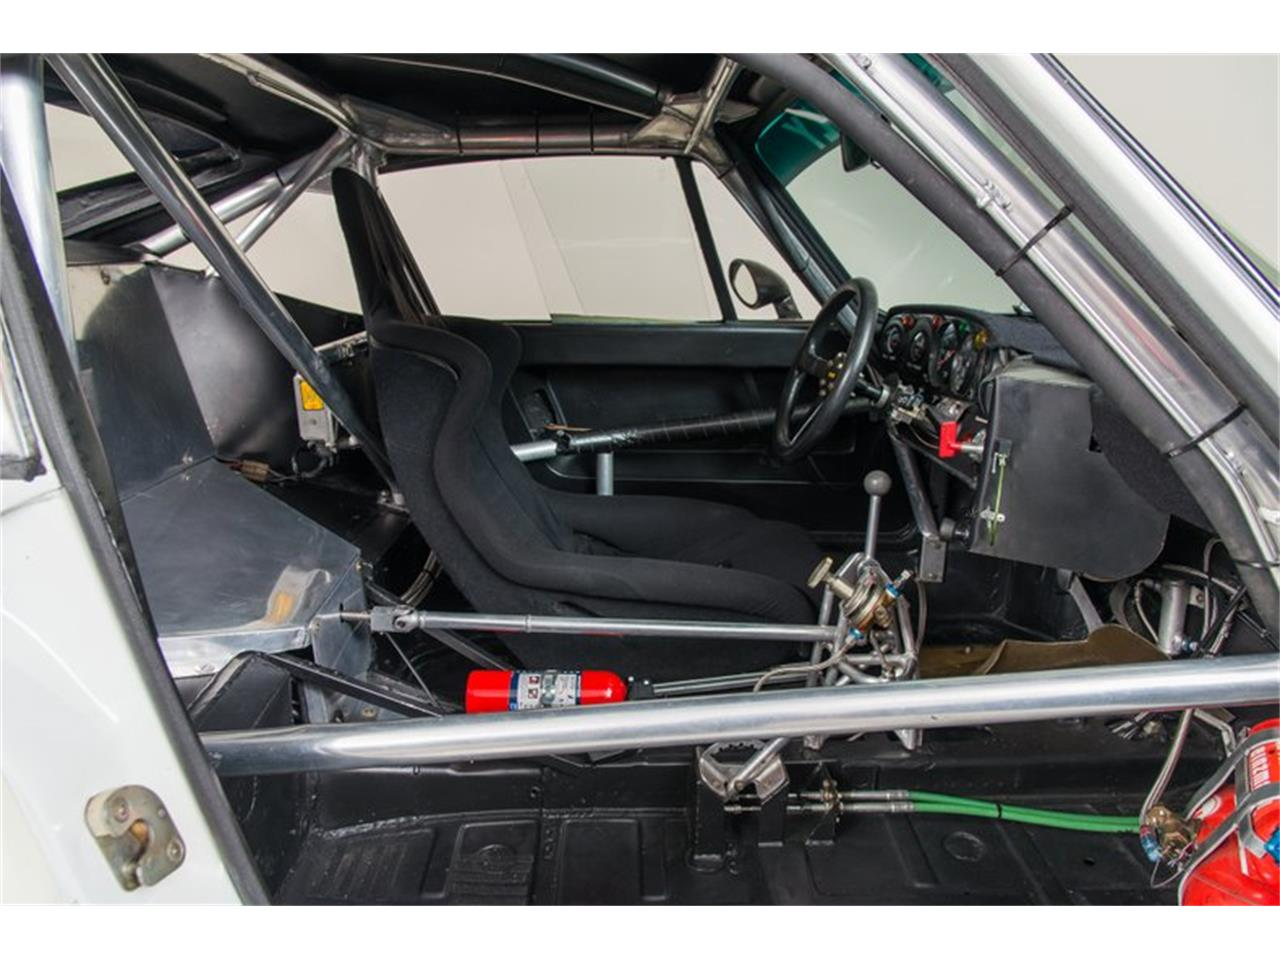 1979 Joest Porsche 935 for sale in Scotts Valley, CA – photo 23